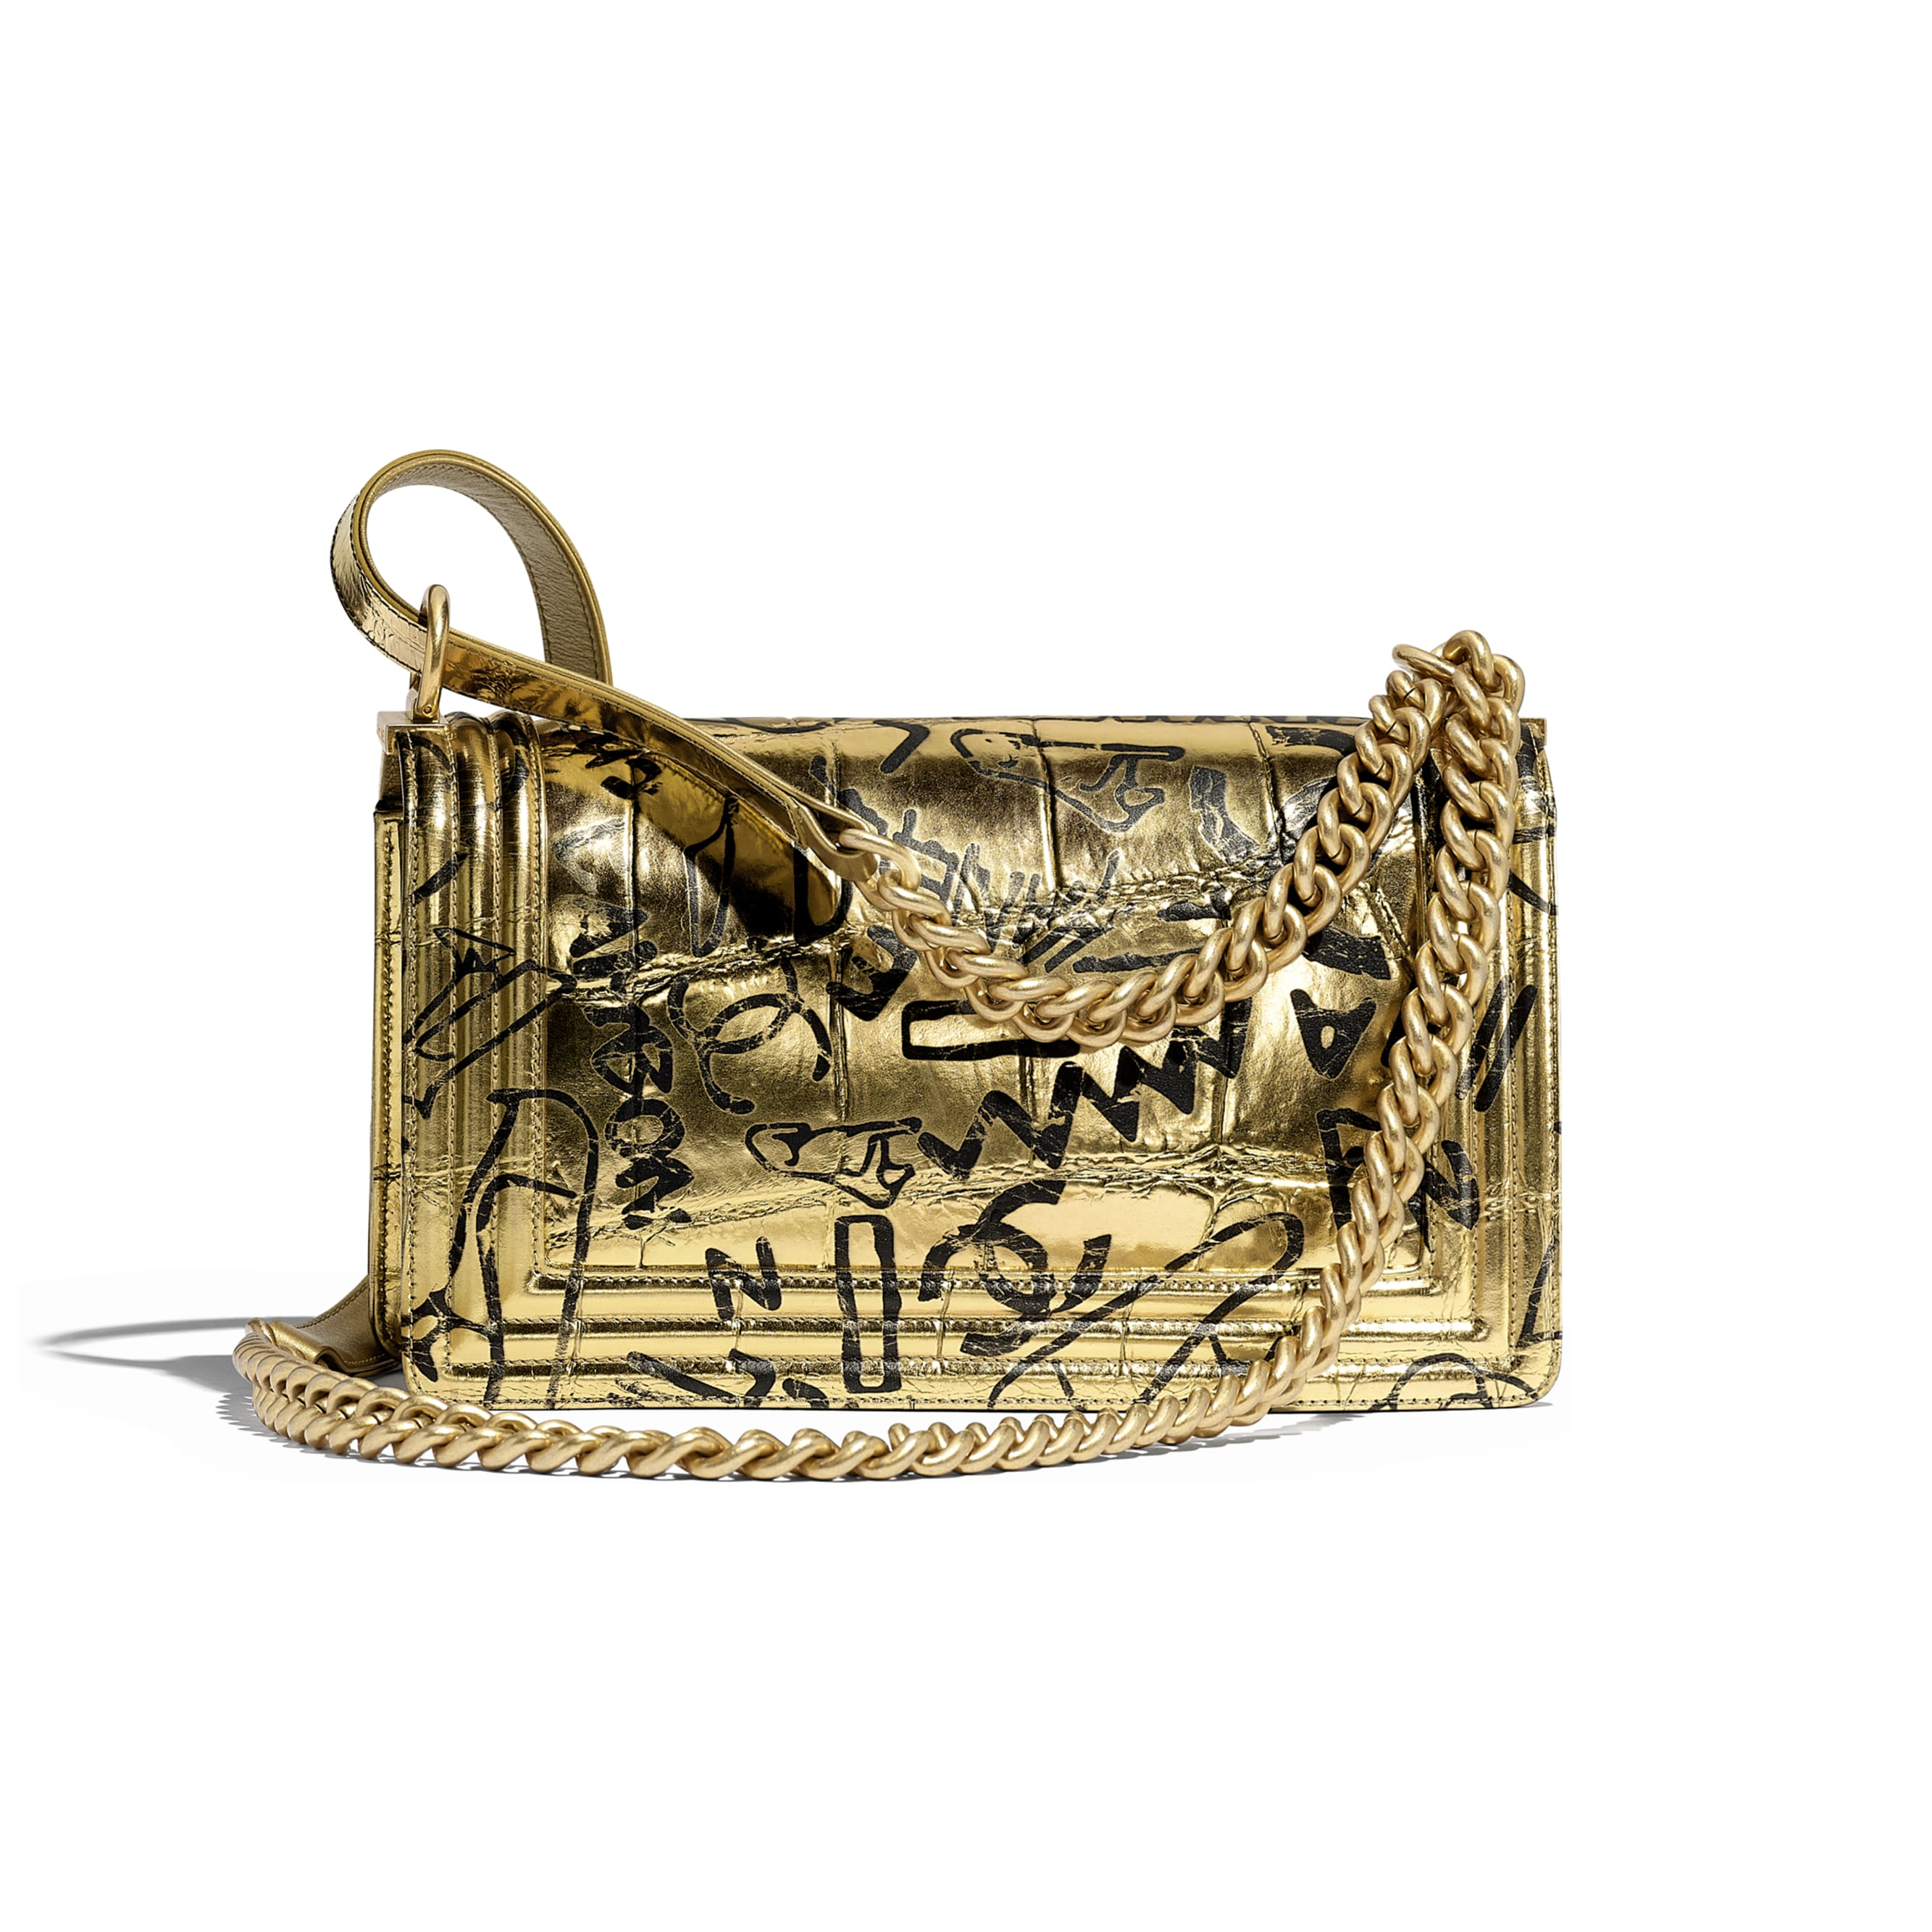 BOY CHANEL Handbag - Gold & Black - Crocodile Embossed Printed Leather & Gold-Tone Metal - Alternative view - see standard sized version